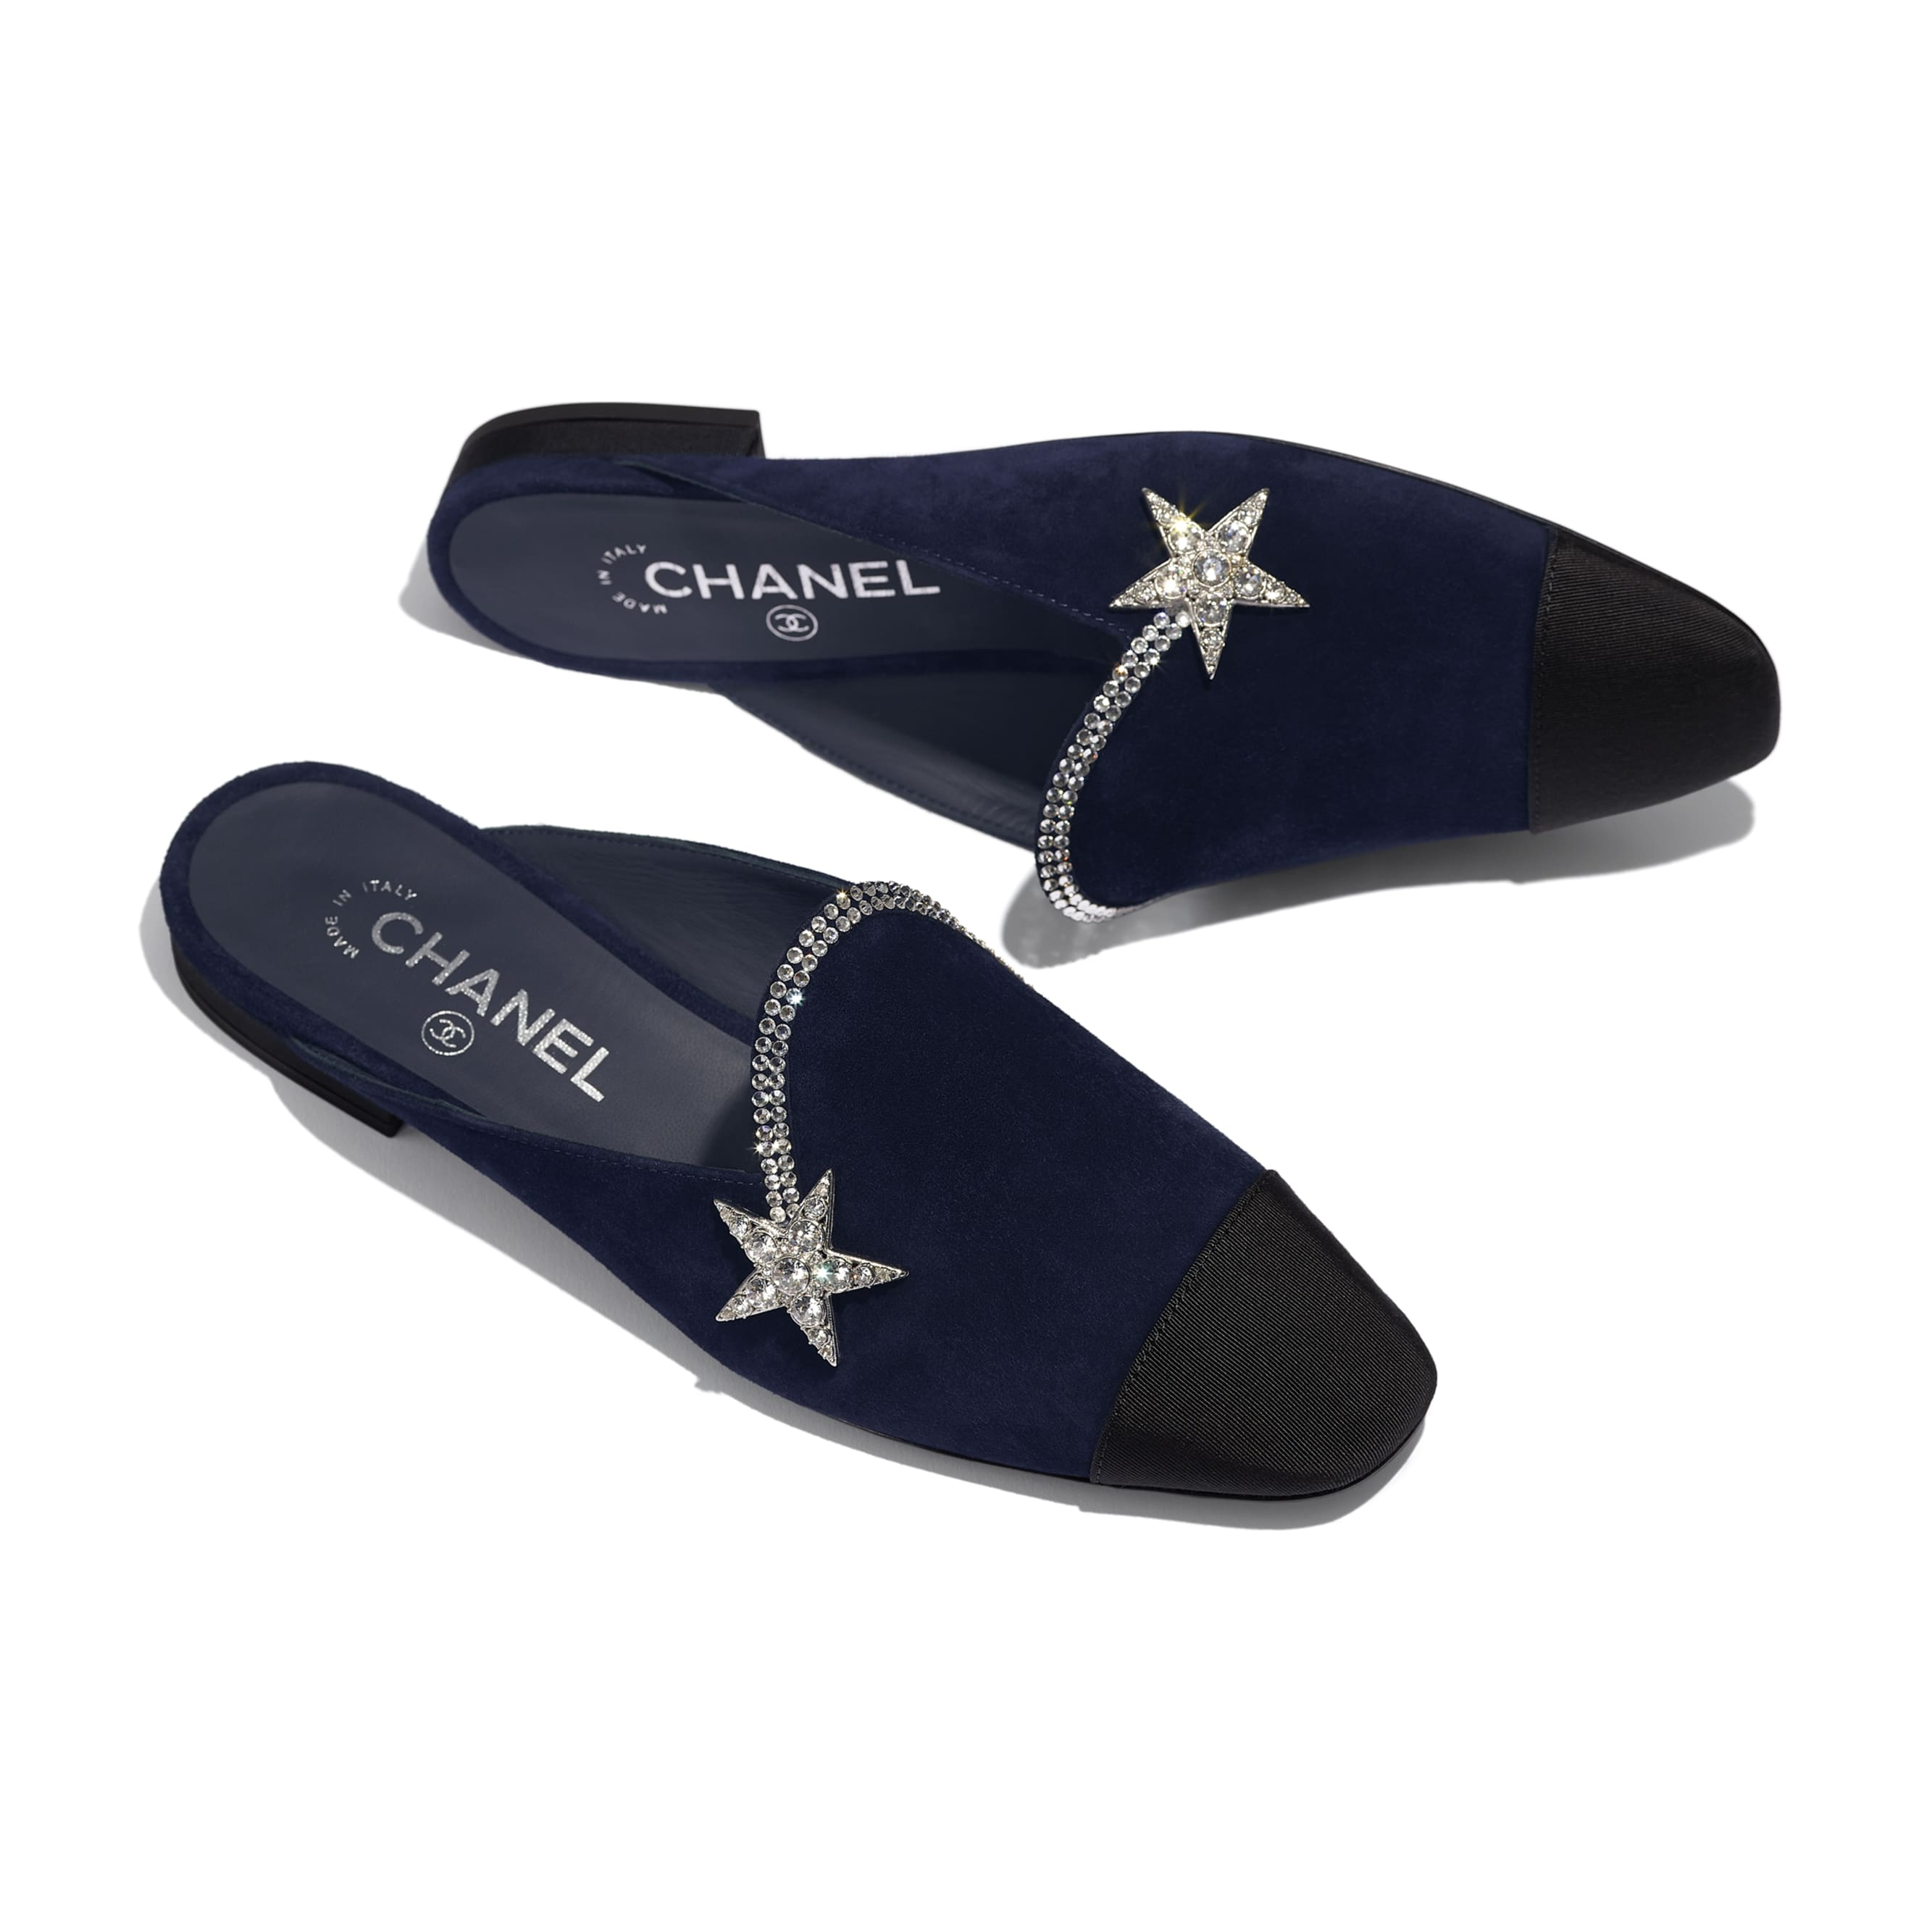 Mules - Navy Blue & Black - Suede Calfskin & Grosgrain - CHANEL - Extra view - see standard sized version